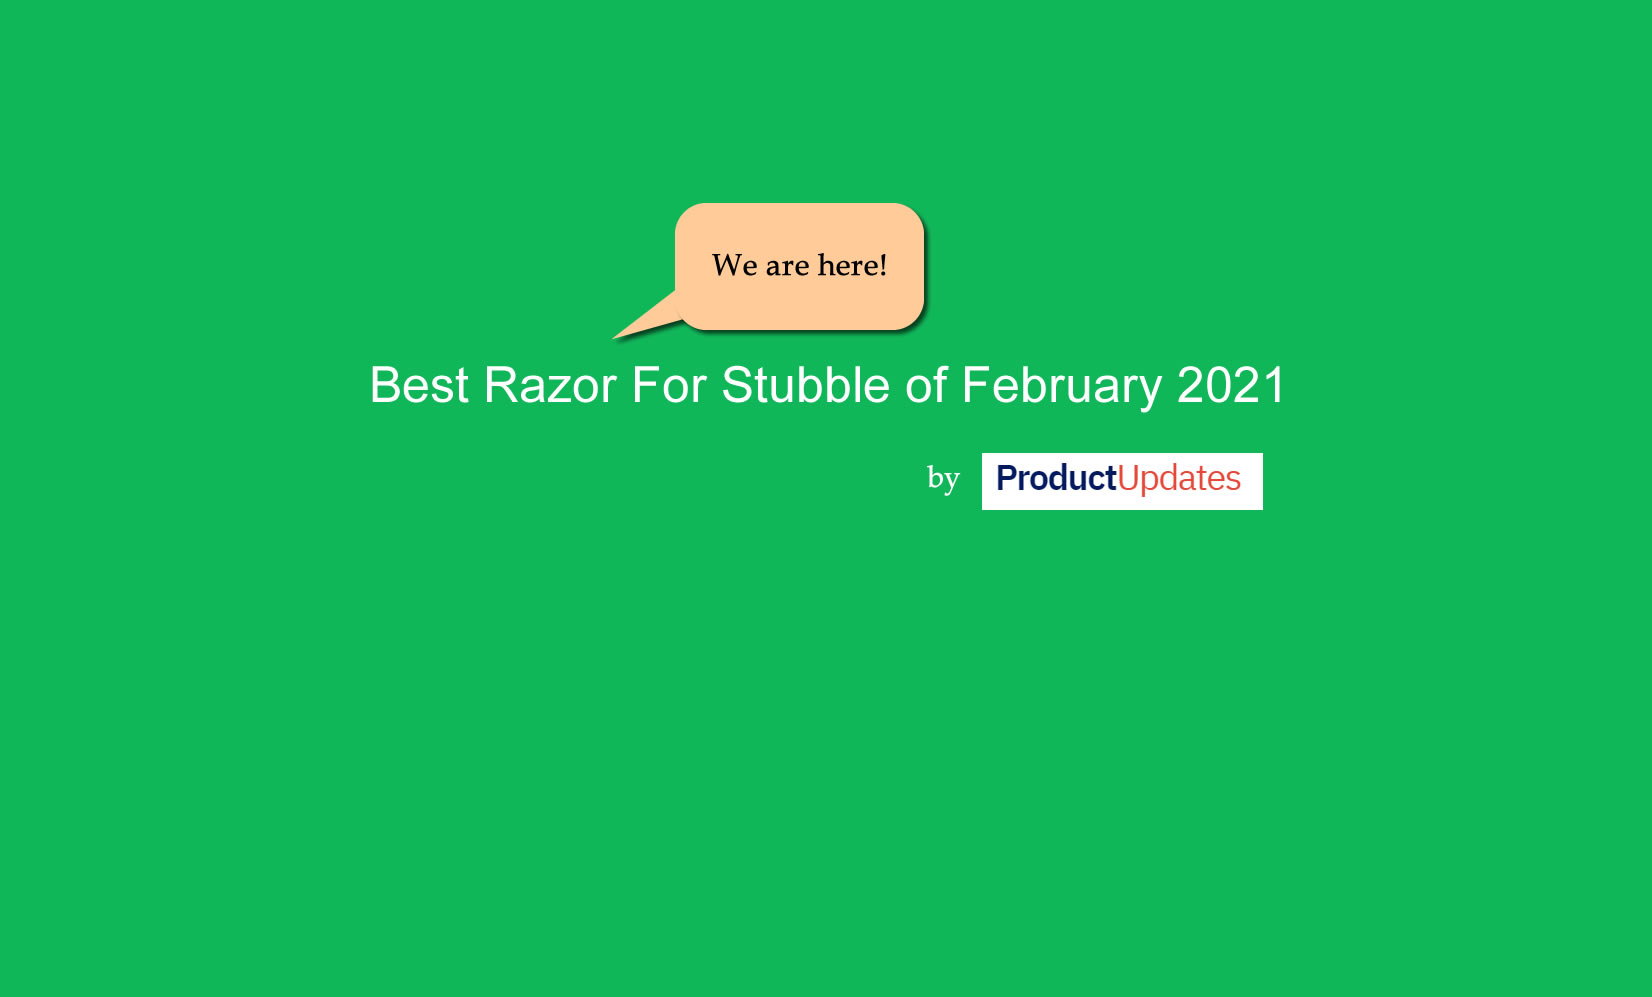 iMusthav® product ranked in Best Razor for Stubble of February 2021